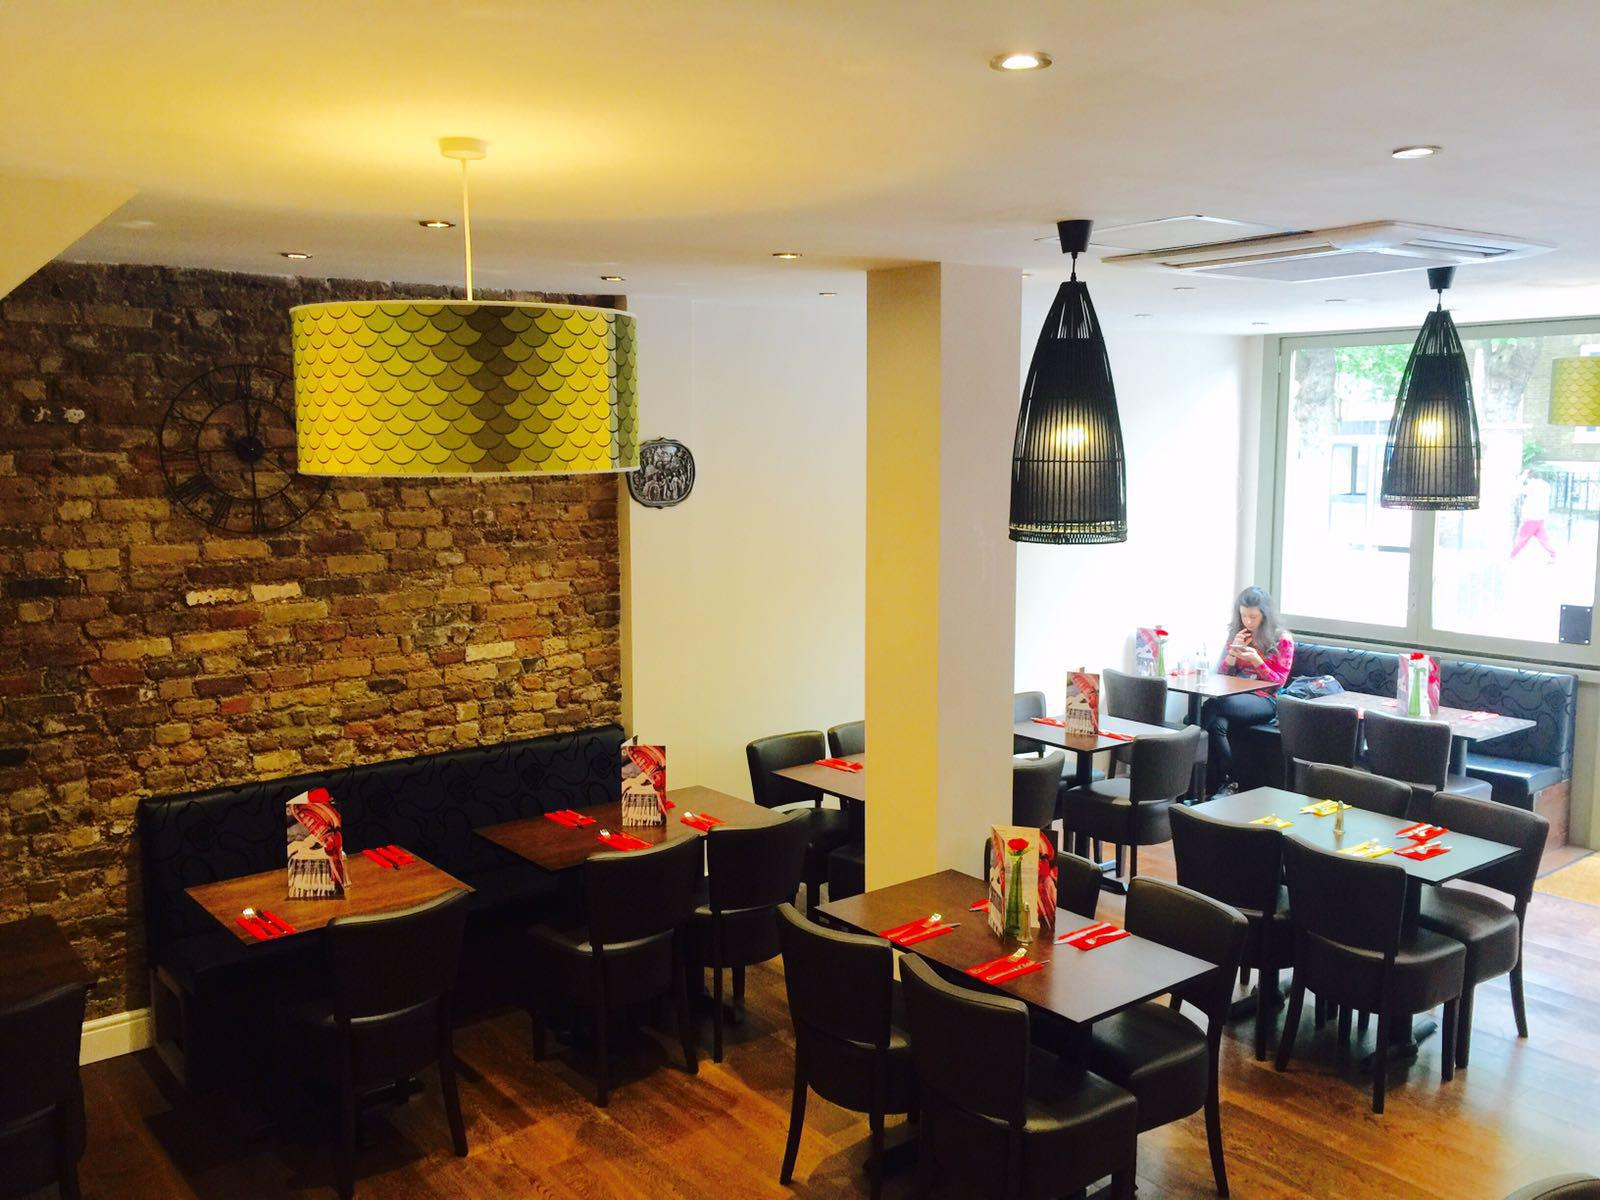 Gallery Image for Radha Krishna Bhavan an Indian Restaurant & Takeaway in Tooting